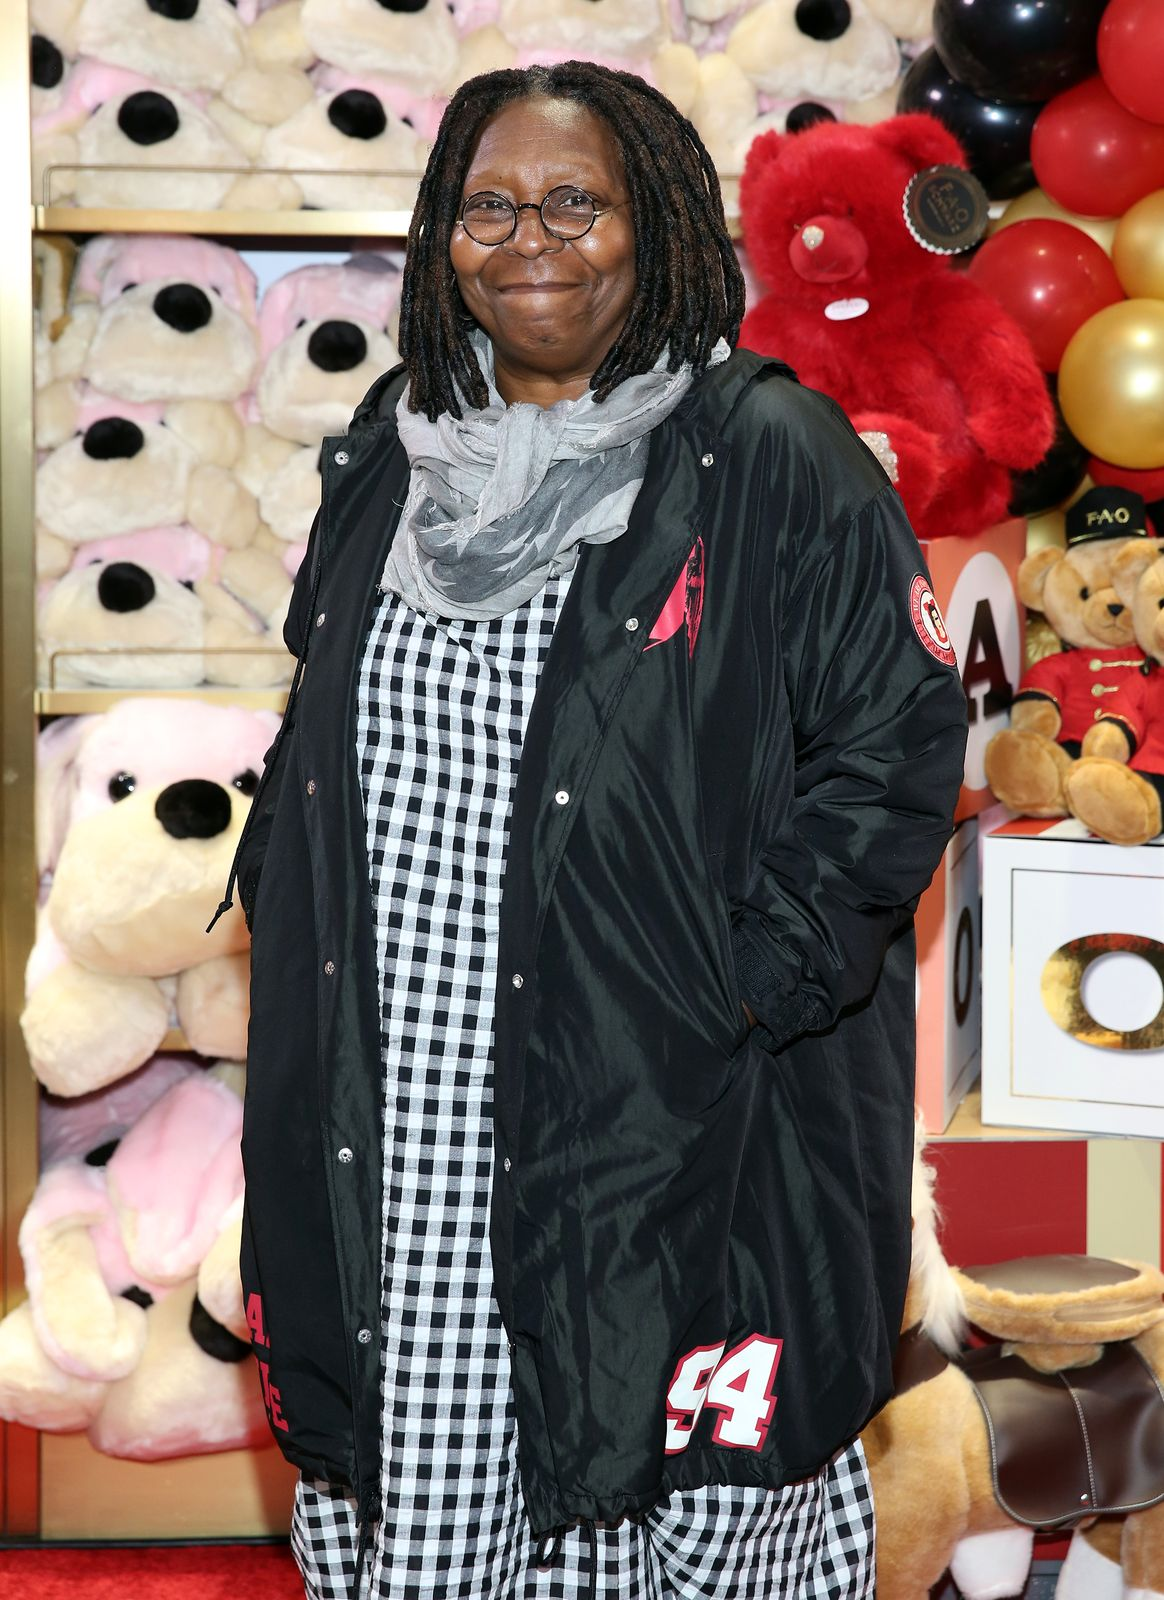 Whoopi Goldberg at the FAO Schwarz Grand Opening Eventon November 15, 2018, in New York City   Photo: Monica Schipper/Getty Images